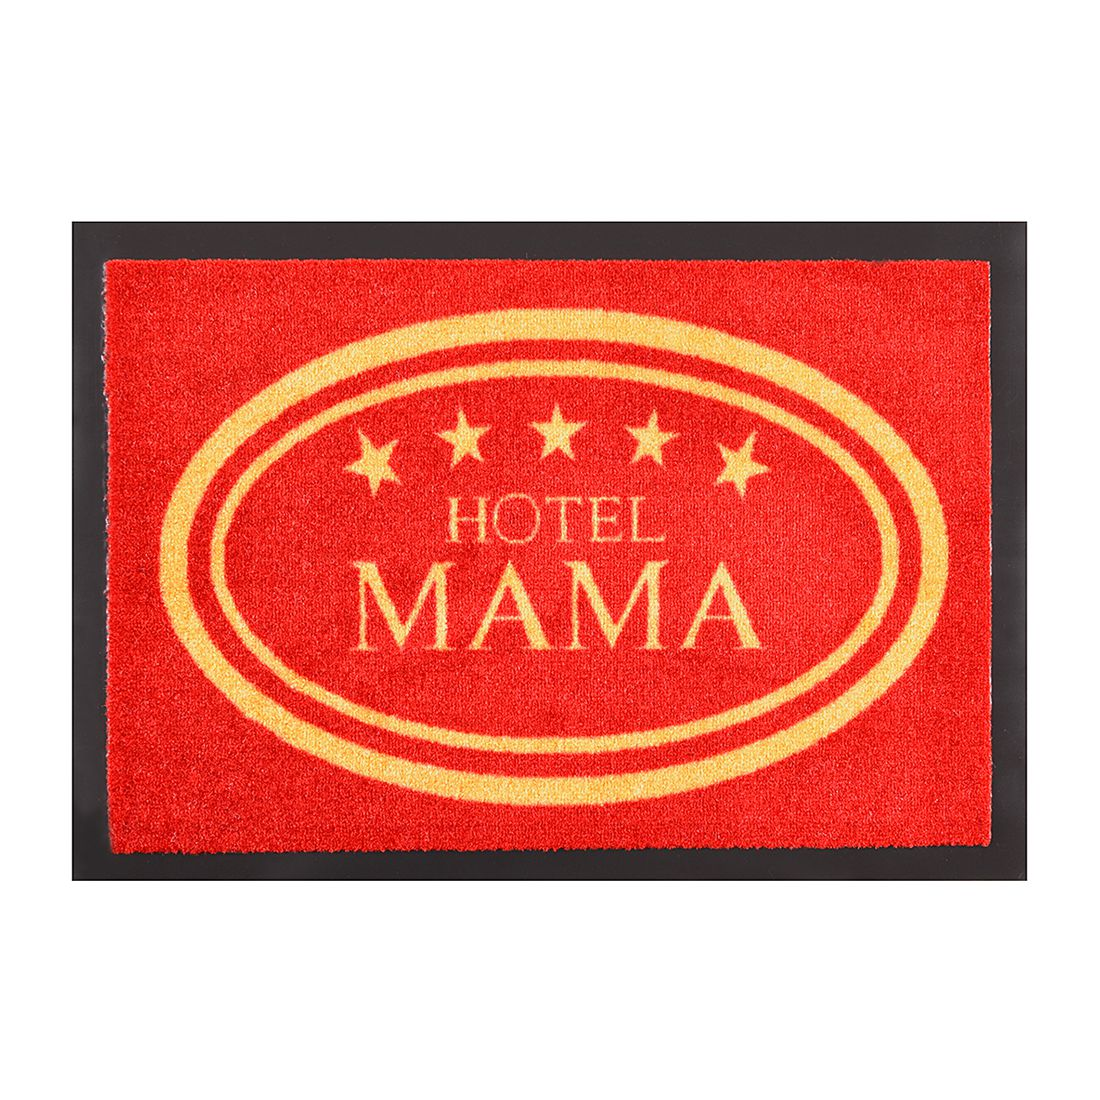 Fußmatte Printy Hotel Mama - Rot/Gelb - 40 x 60 cm, Hanse Home Collection